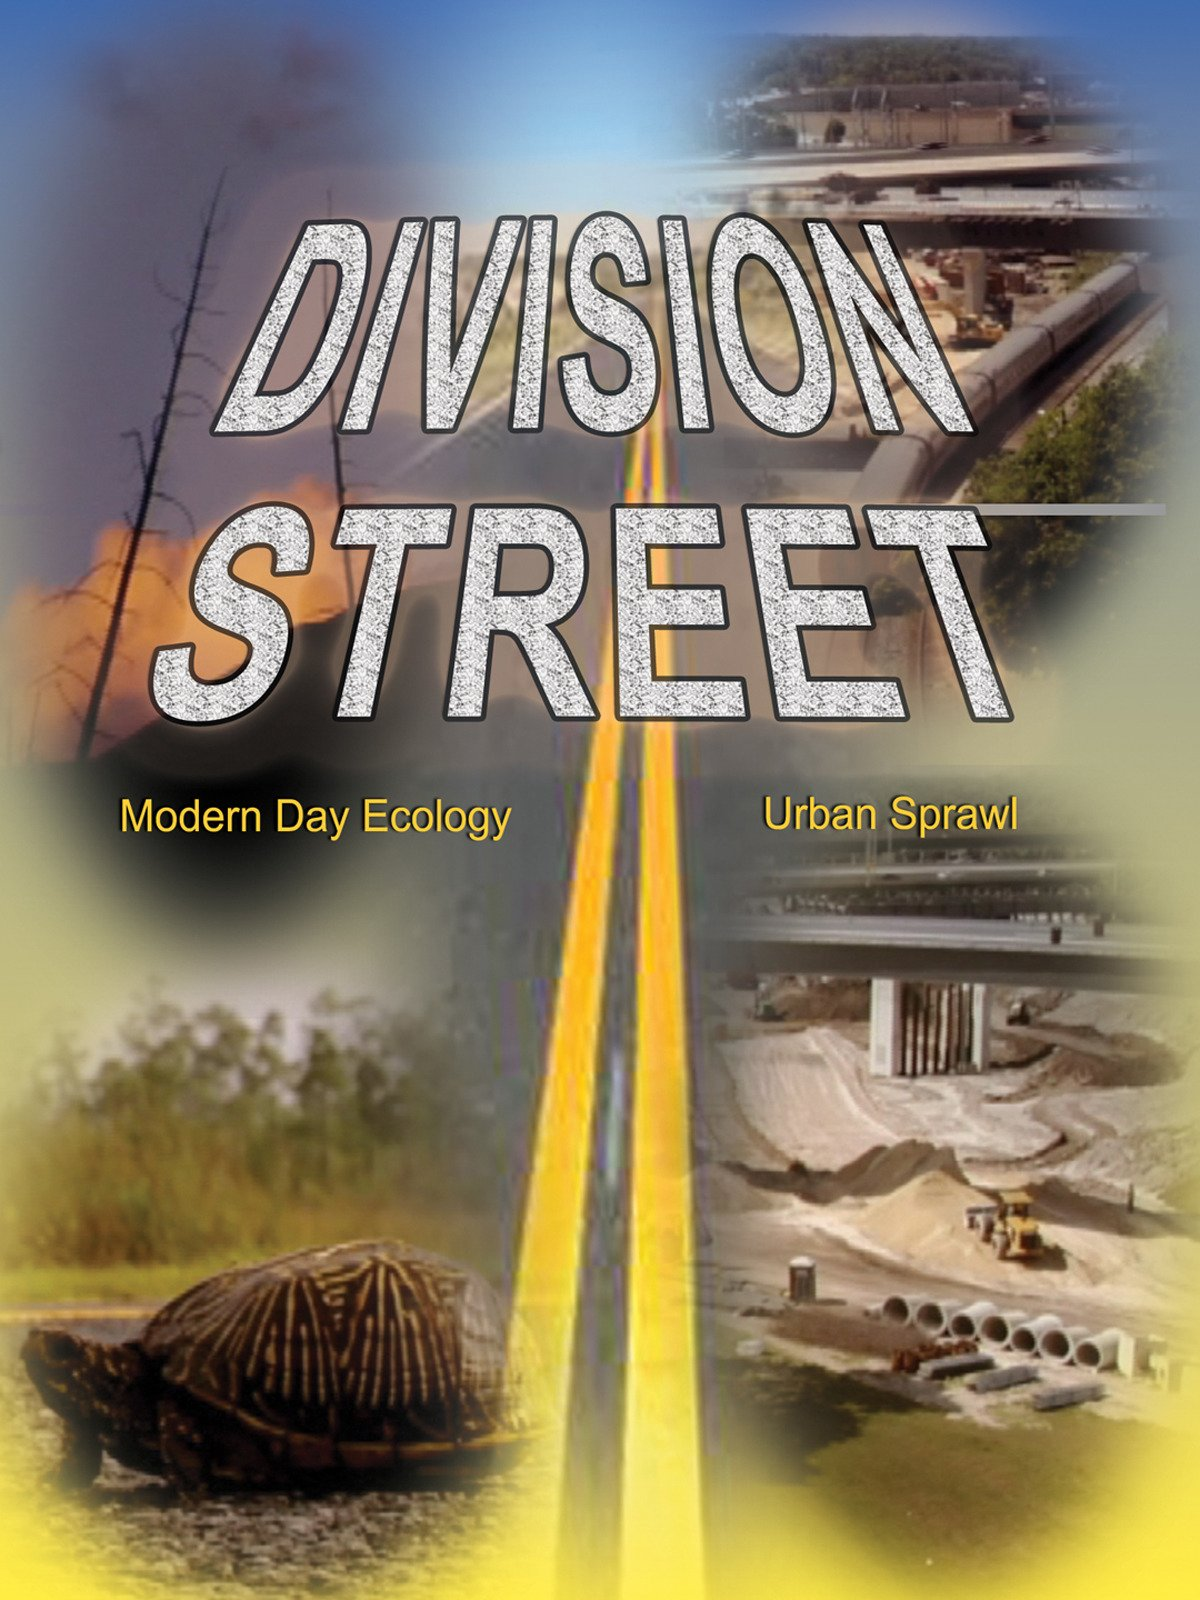 Division Street: The Blight Of Roads On America